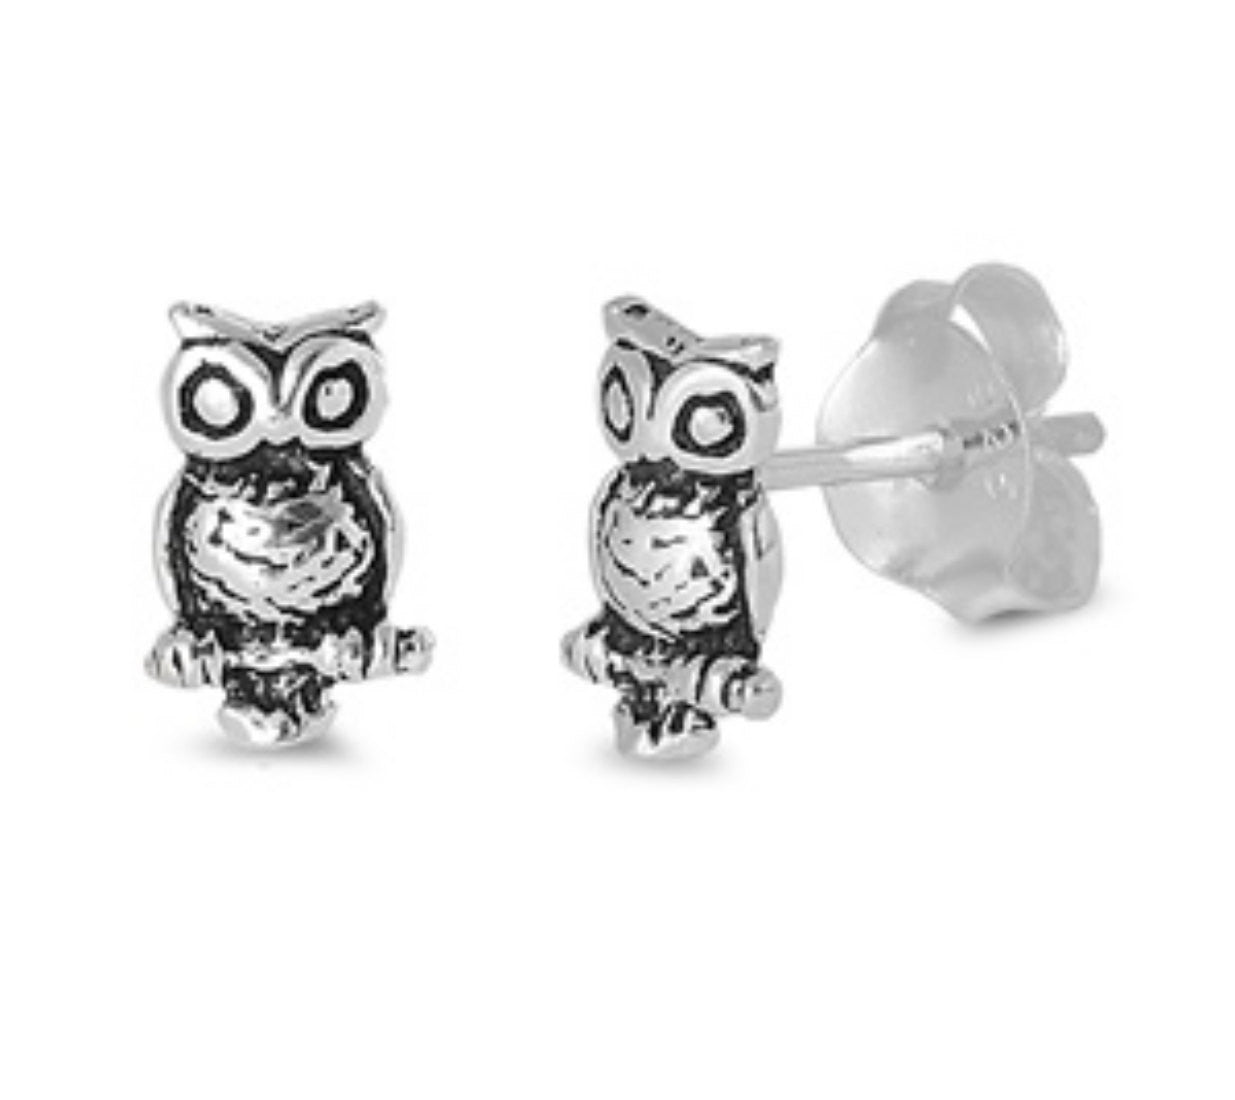 8mm Tiny Owl Cute Stud Post Earring Solid 925 Sterling Silver Oxidized Owl Earrings, Good Luck Gift, Babies, Kids - Blue Apple Jewelry